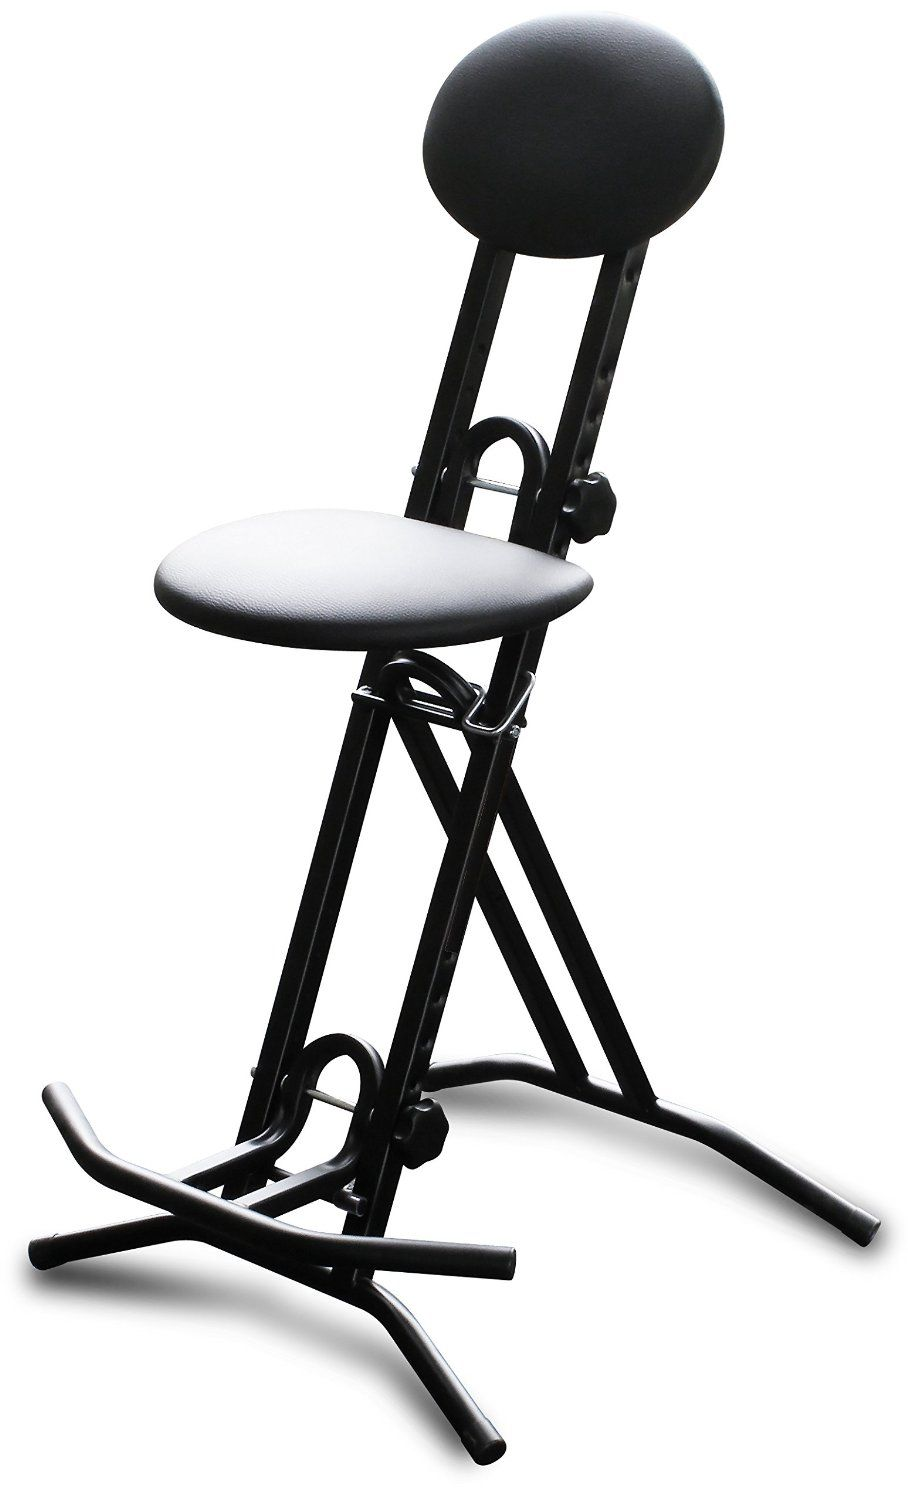 Amazon.com Road Ready RRGCH Fully Adjustable Seat Guitar Stool with Back and Foot  sc 1 st  Pinterest & Amazon.com: Road Ready RRGCH Fully Adjustable Seat Guitar Stool ... islam-shia.org